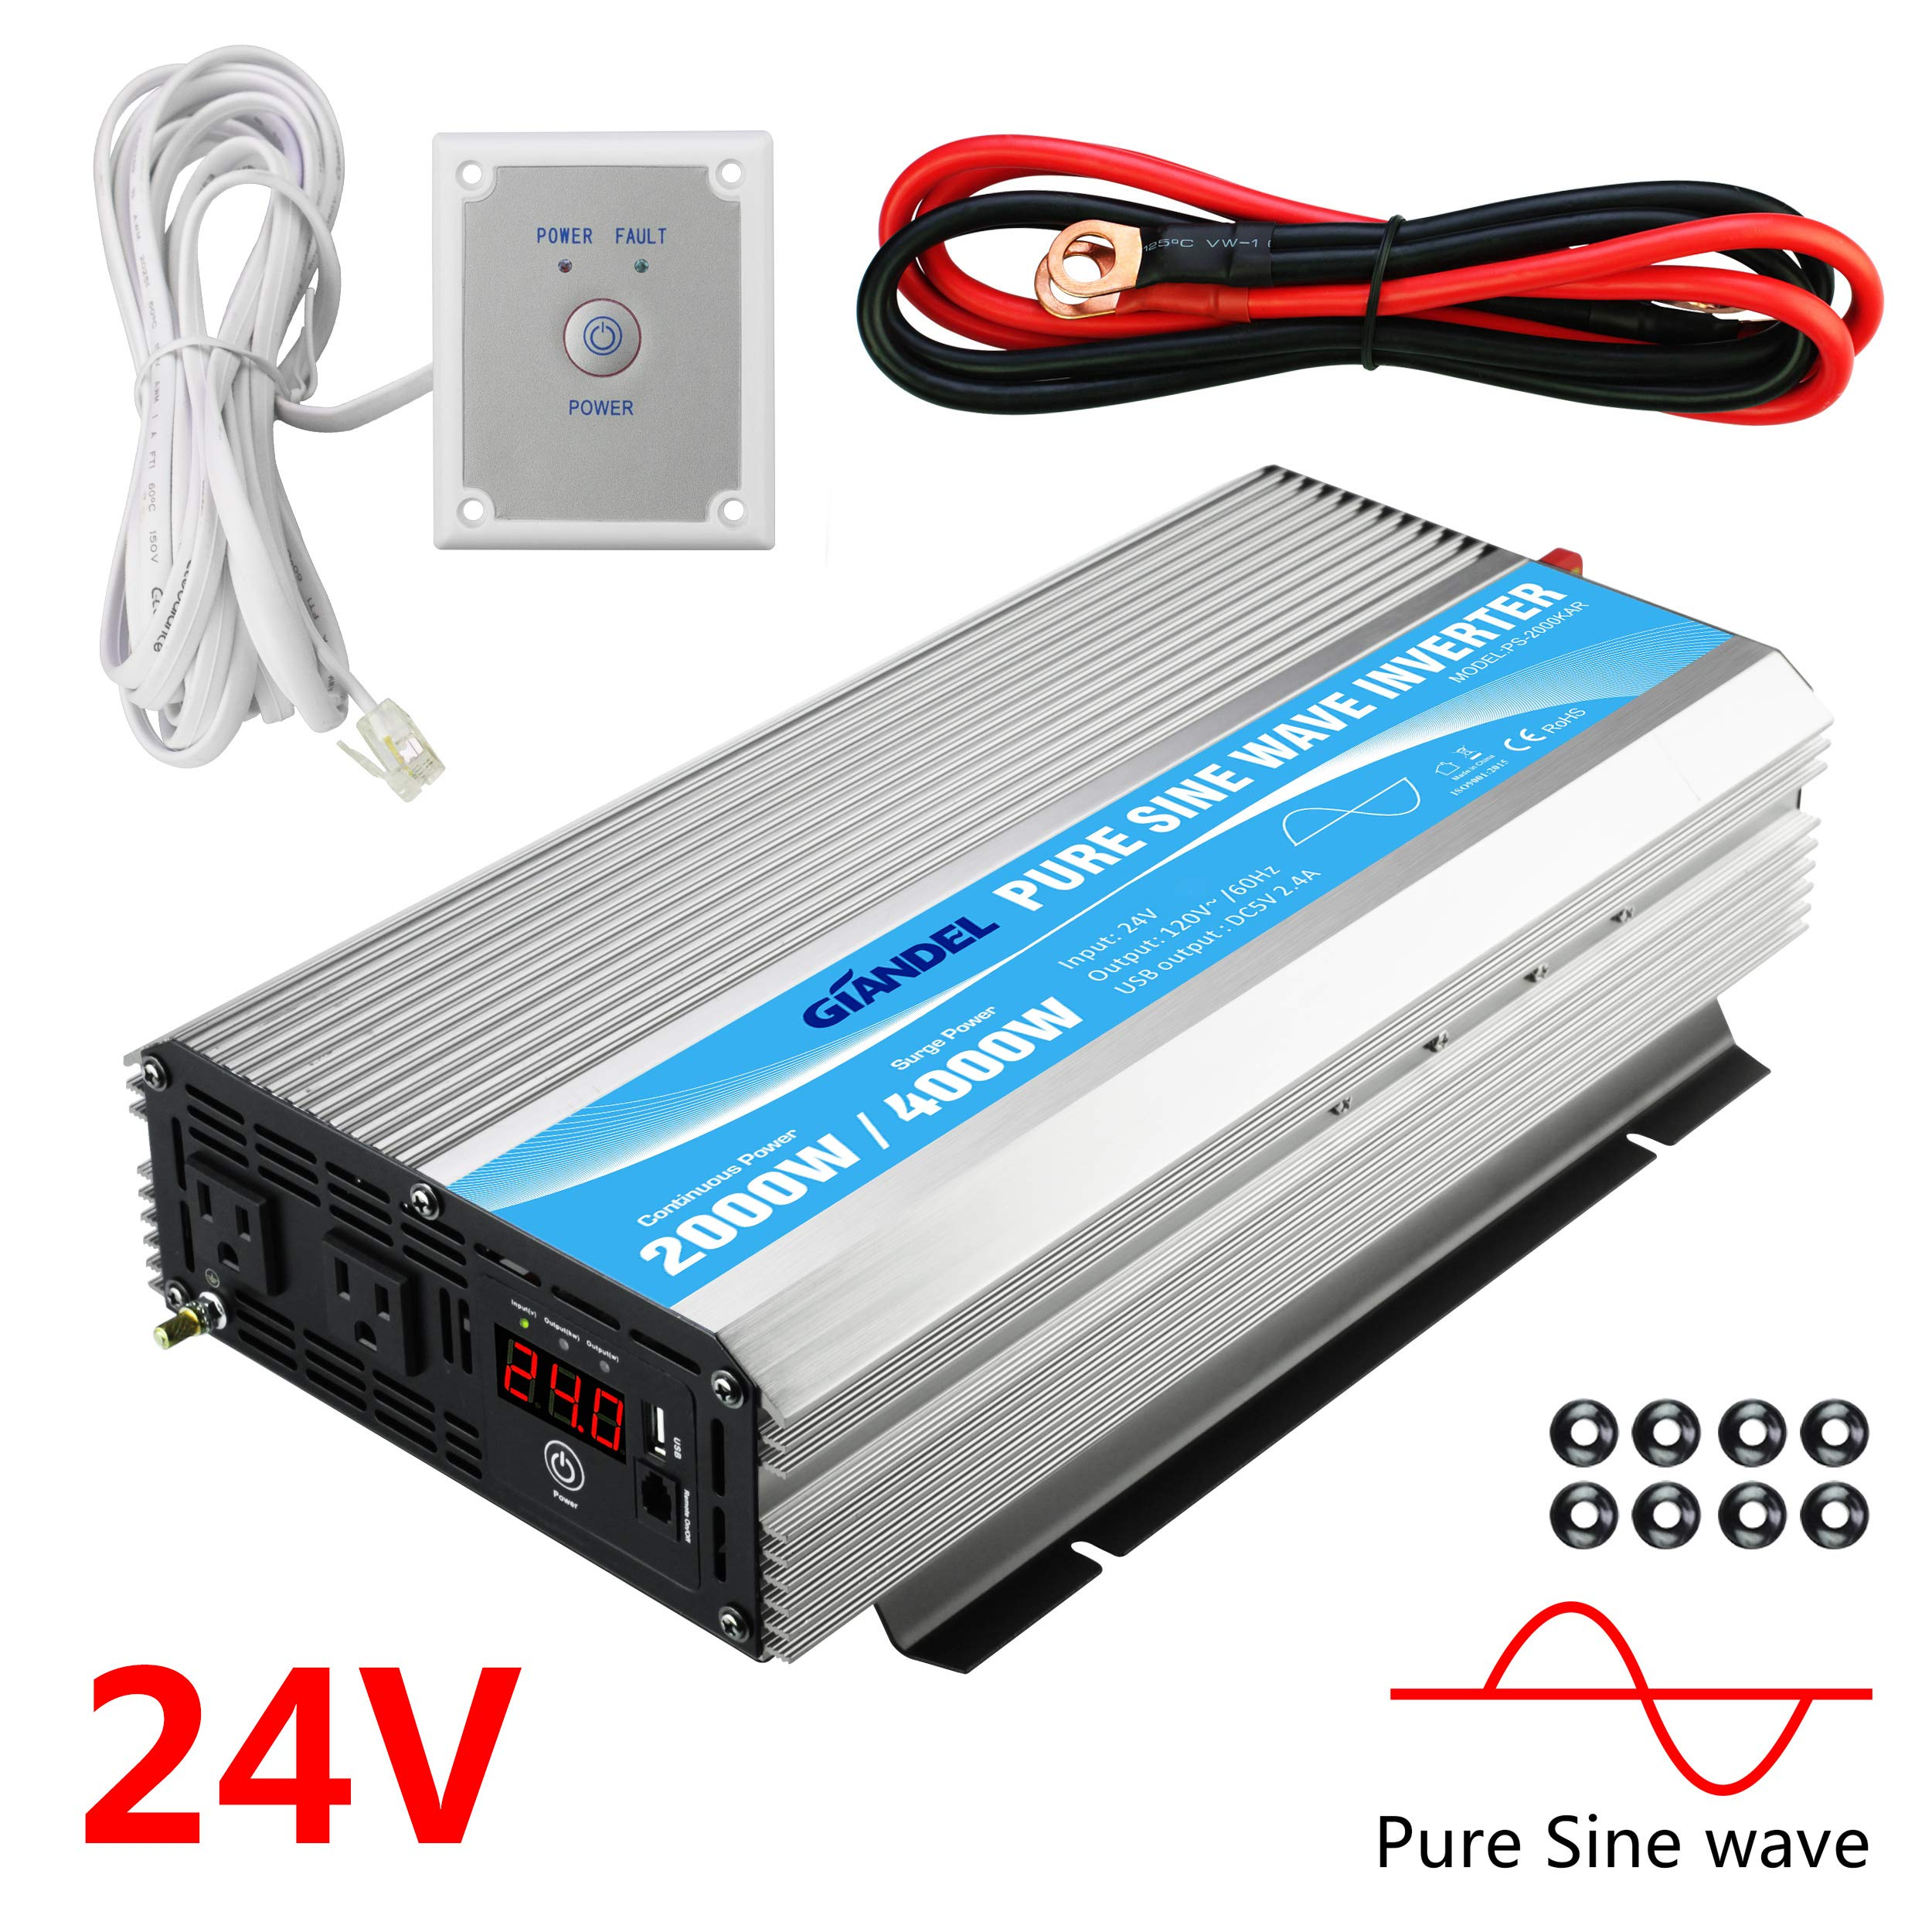 Giandel 2000W Pure Sine Wave Power Inverter DC 24V to AC120V with Dual AC Outlets with Remote Control 2.4A USB and LED Display by Giandel